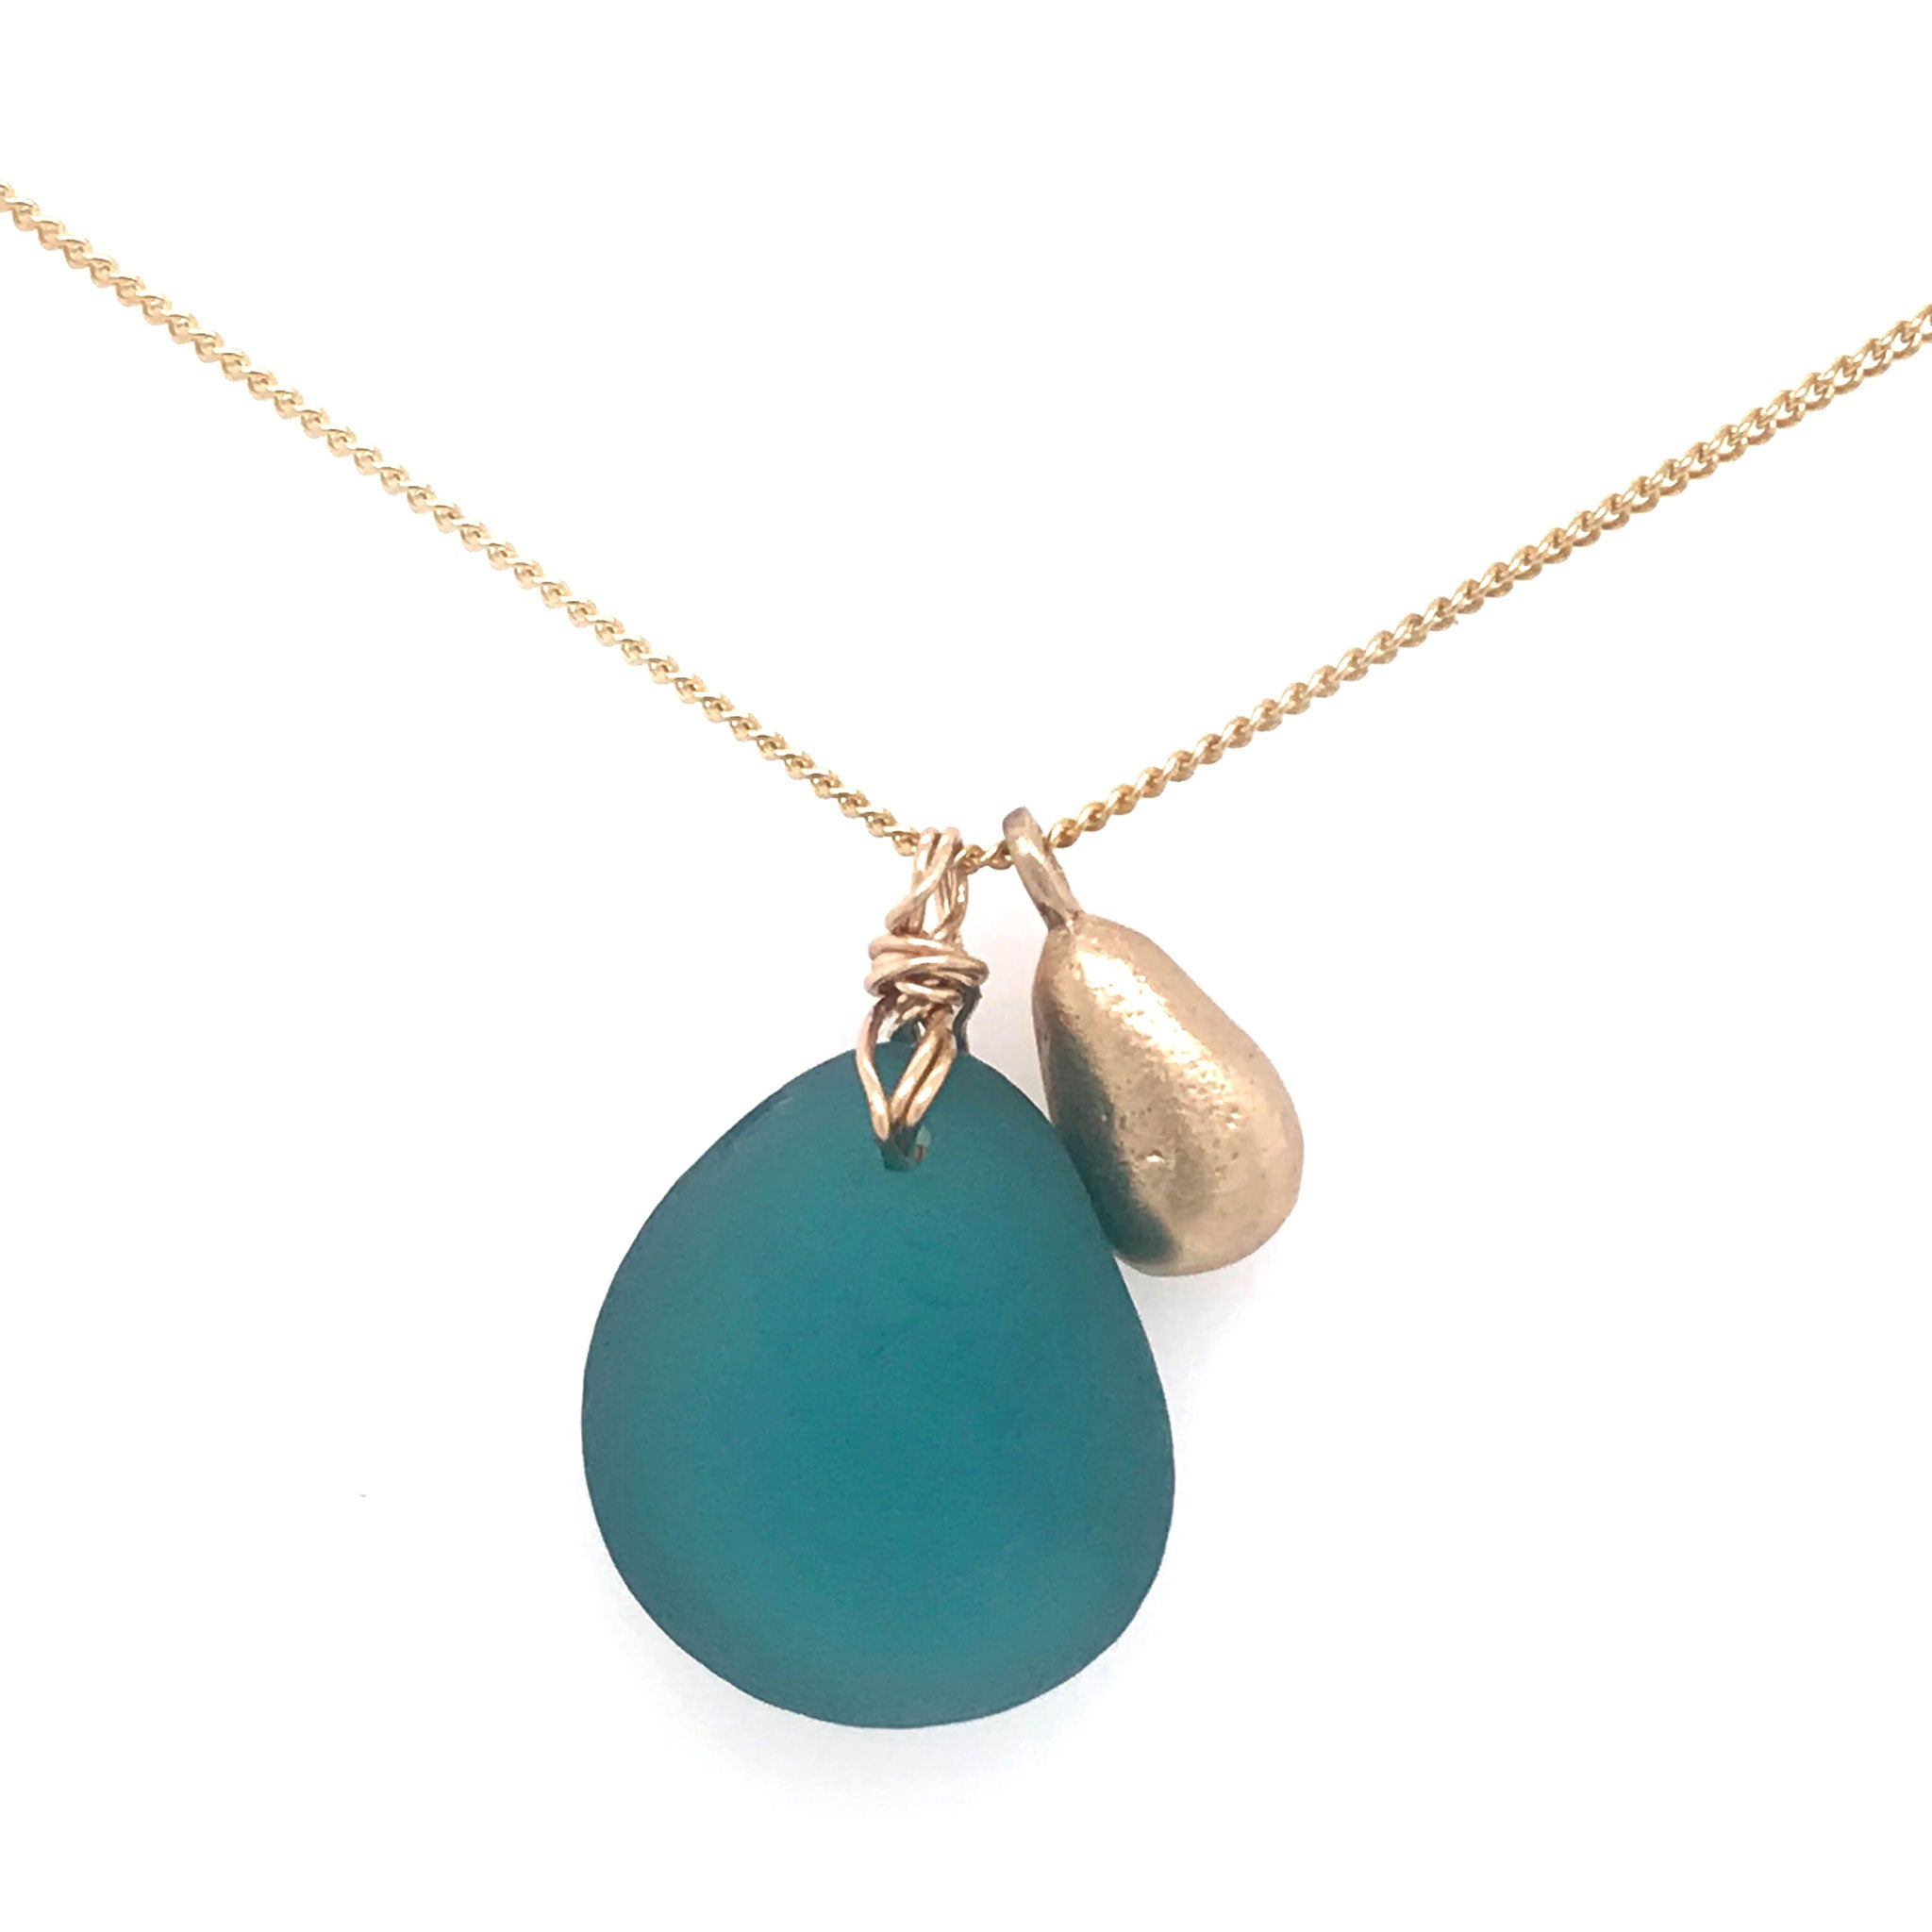 gold charm necklace with teal seaglass and solid 14k gold teardrop charm Kriket Broadhurst handmade jewellery